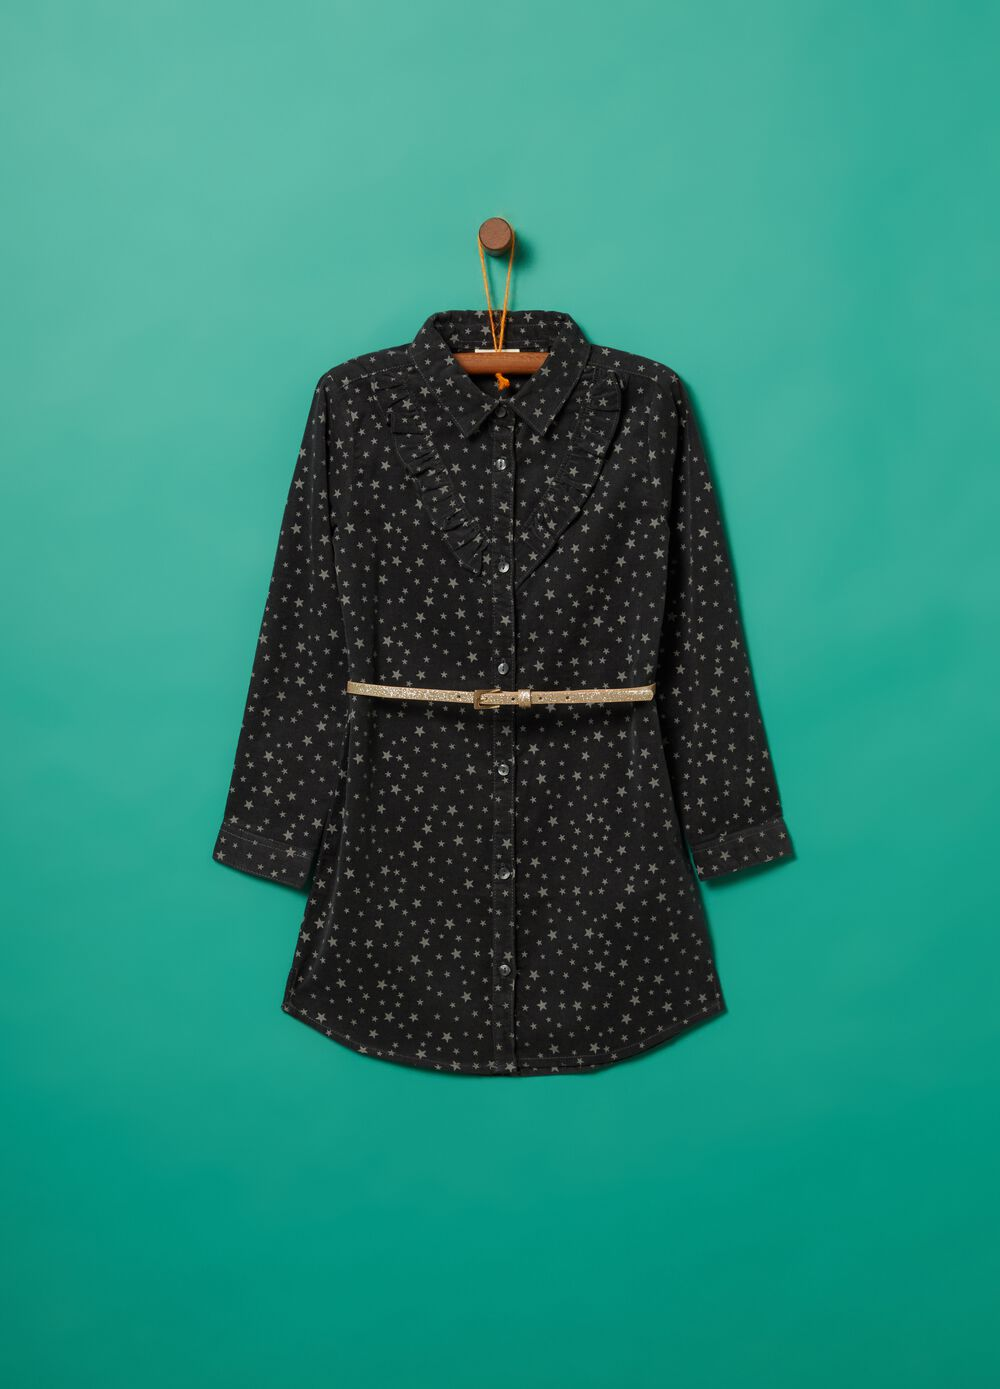 Corduroy shirt dress with pattern